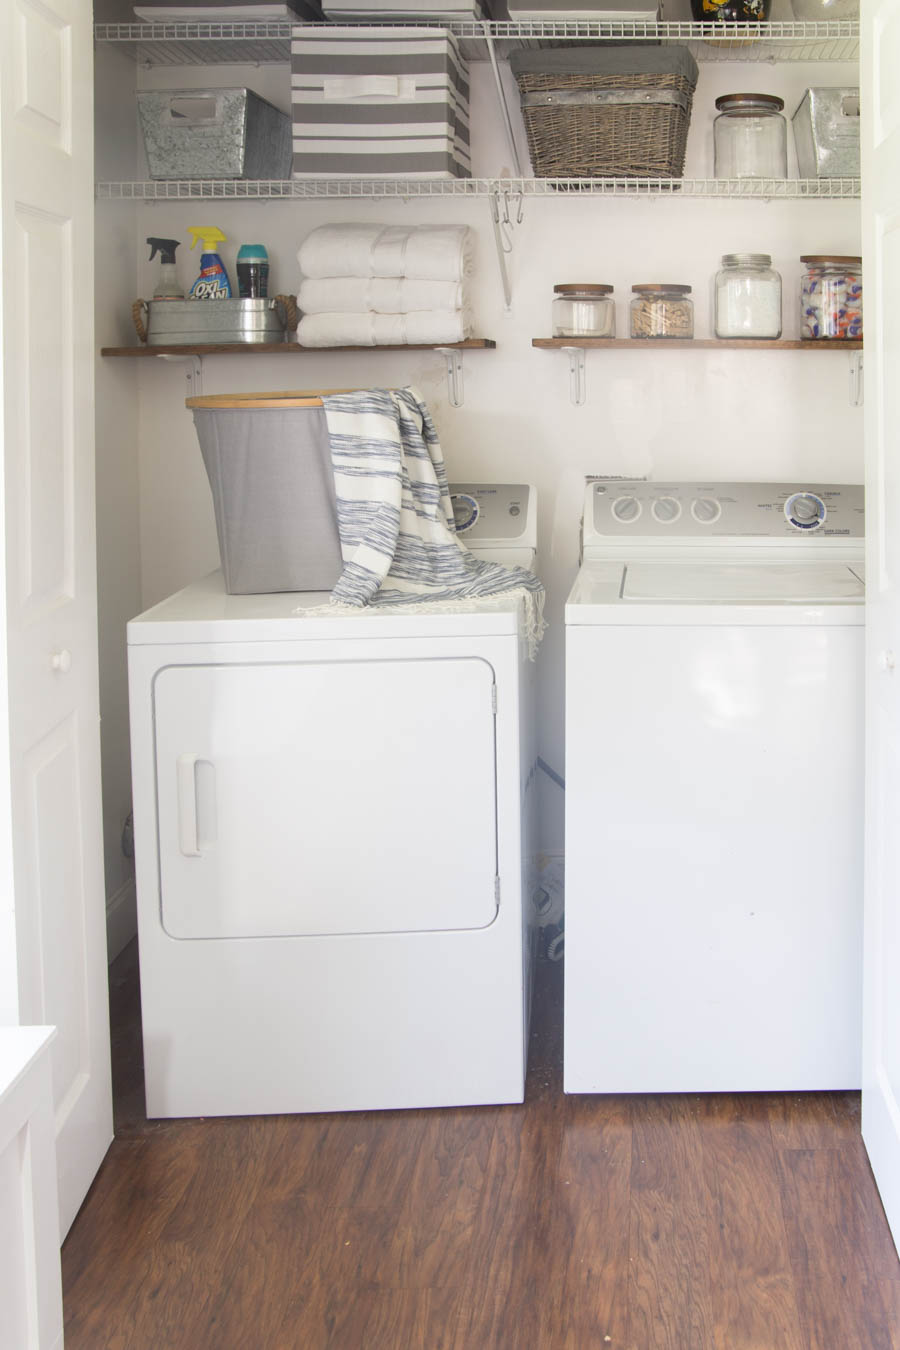 It's time for a laundry room redo! Beautifully Organized Small Laundry Rooms - The Happy Housie